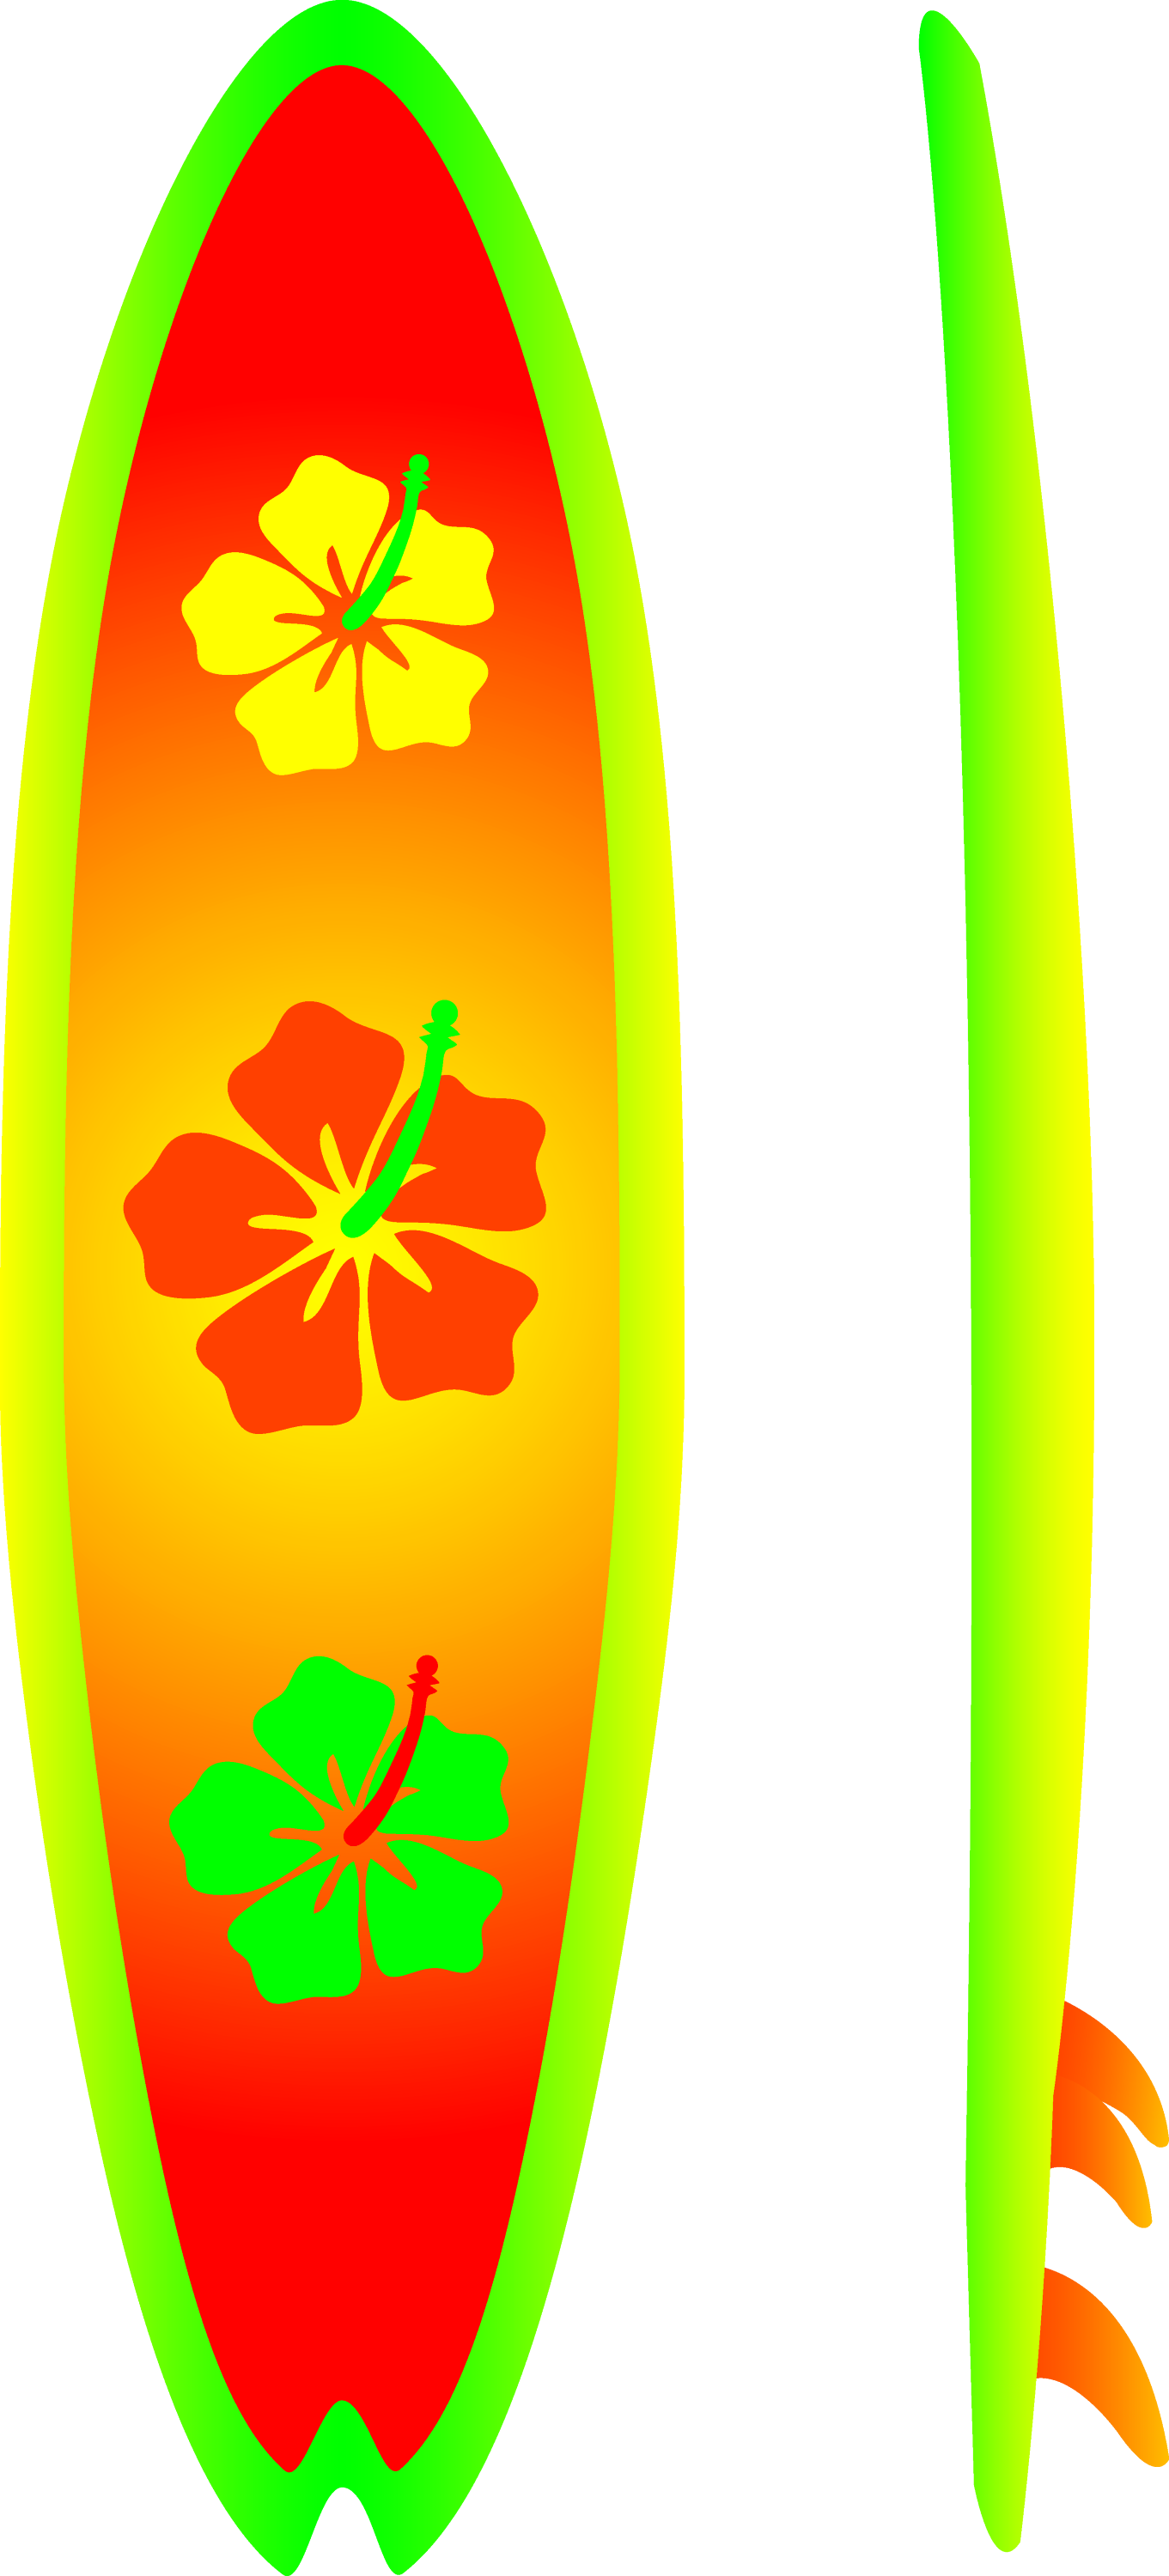 Neon Surfboard With Hibiscus Design - Free Clip Art